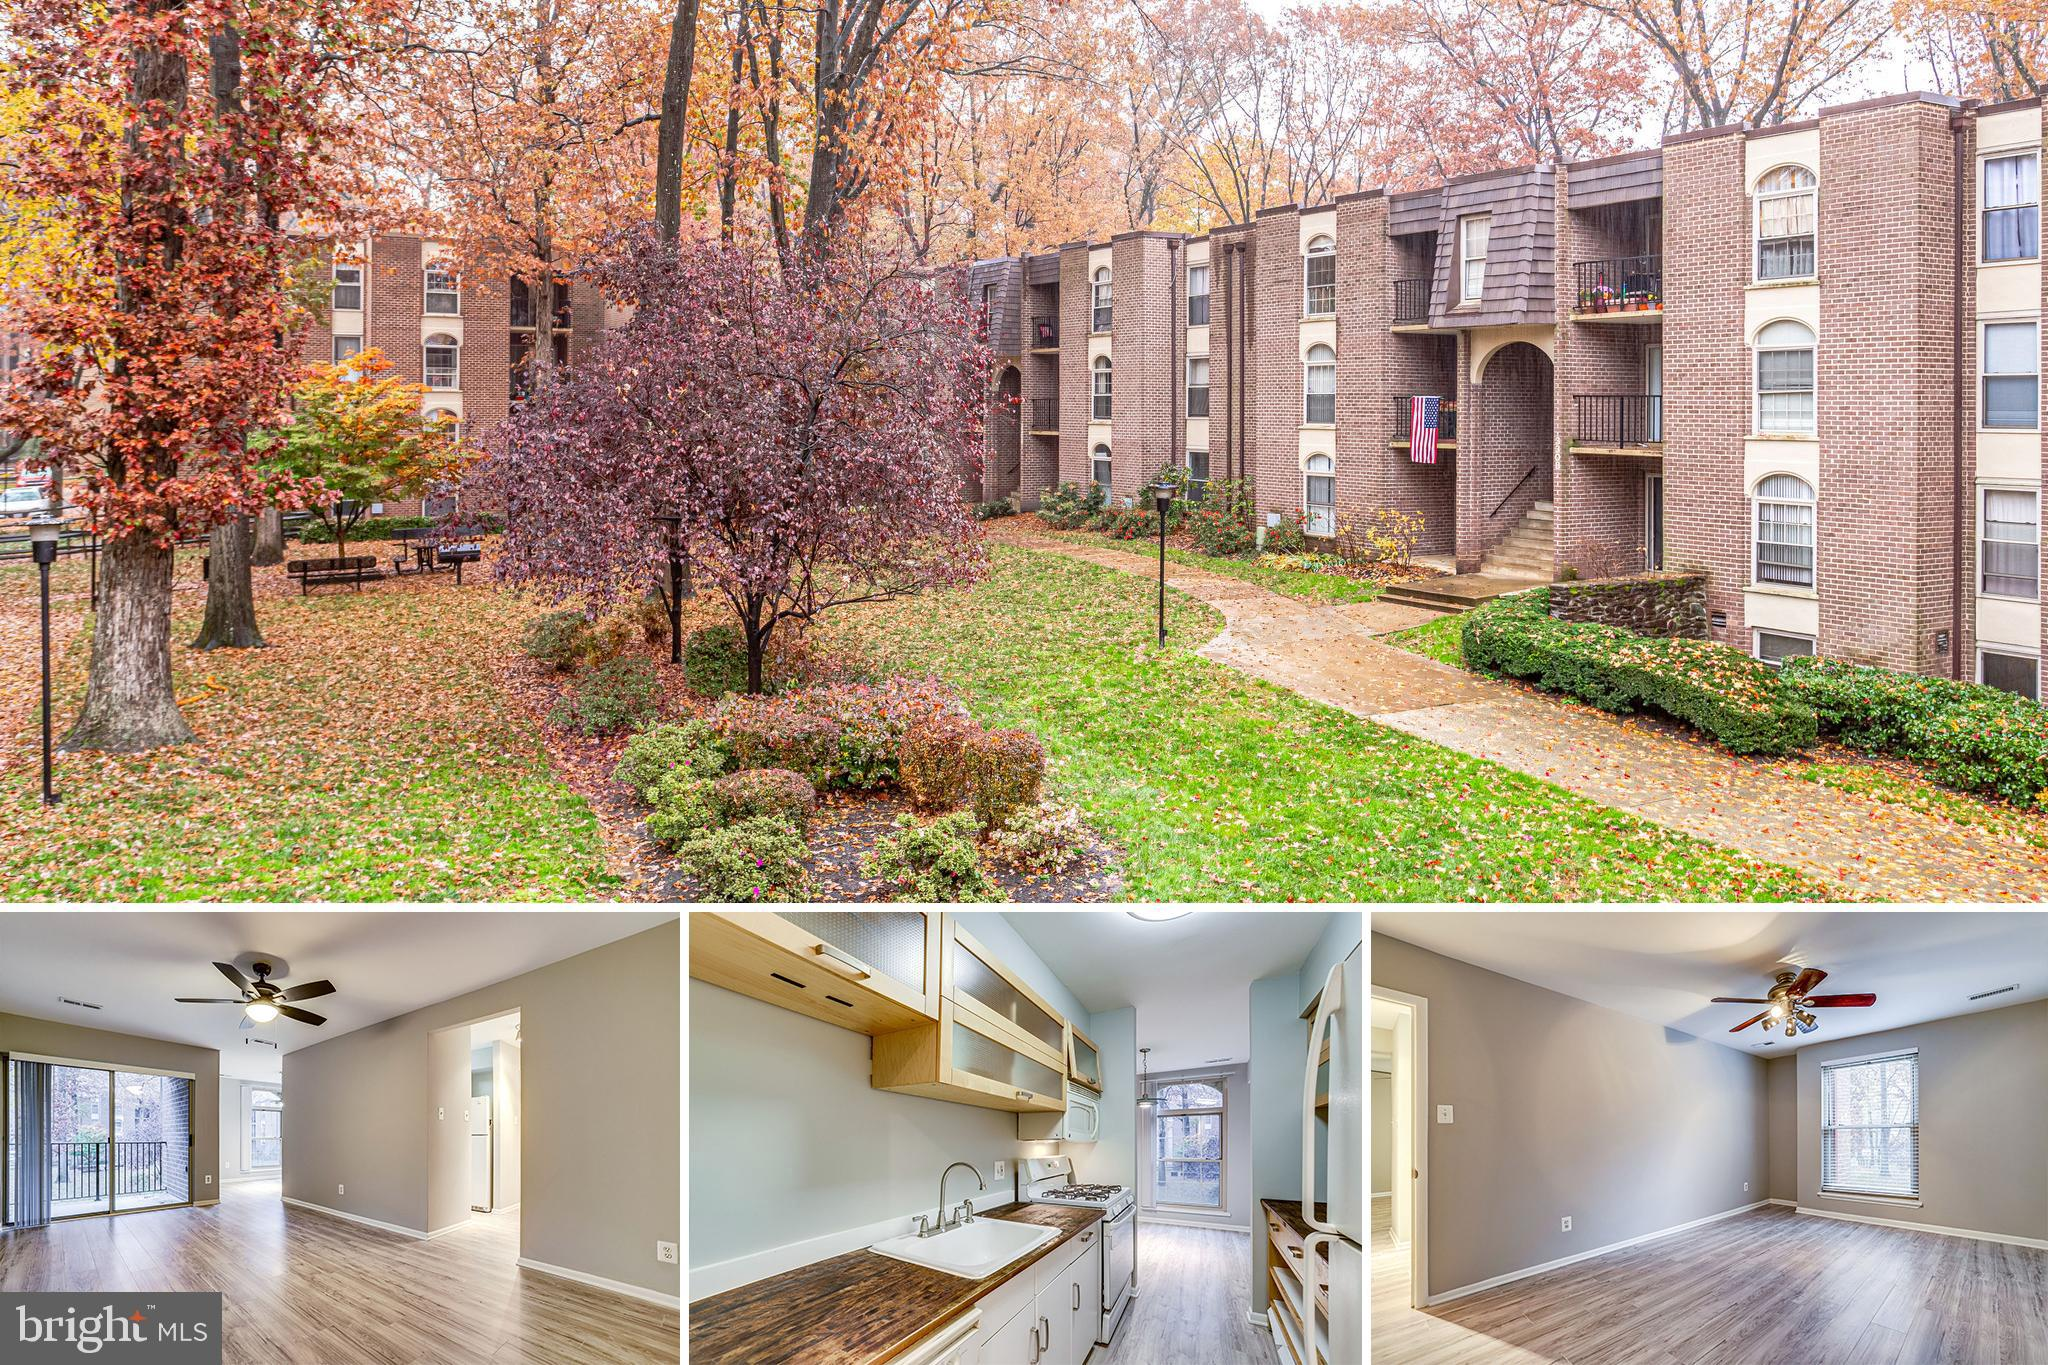 Wonderful 1br/1ba in convenient Woodburn Village. Great updated kitchen and bath, new flooring and paint!  Easy access to 495, 66, 267, Rt 50. Easy walk to INOVA Fairfax. Utils inc in condo fee. Common laundry room in basement. Extra storage space. Great amenities like pool, tot lots, tennis courts.